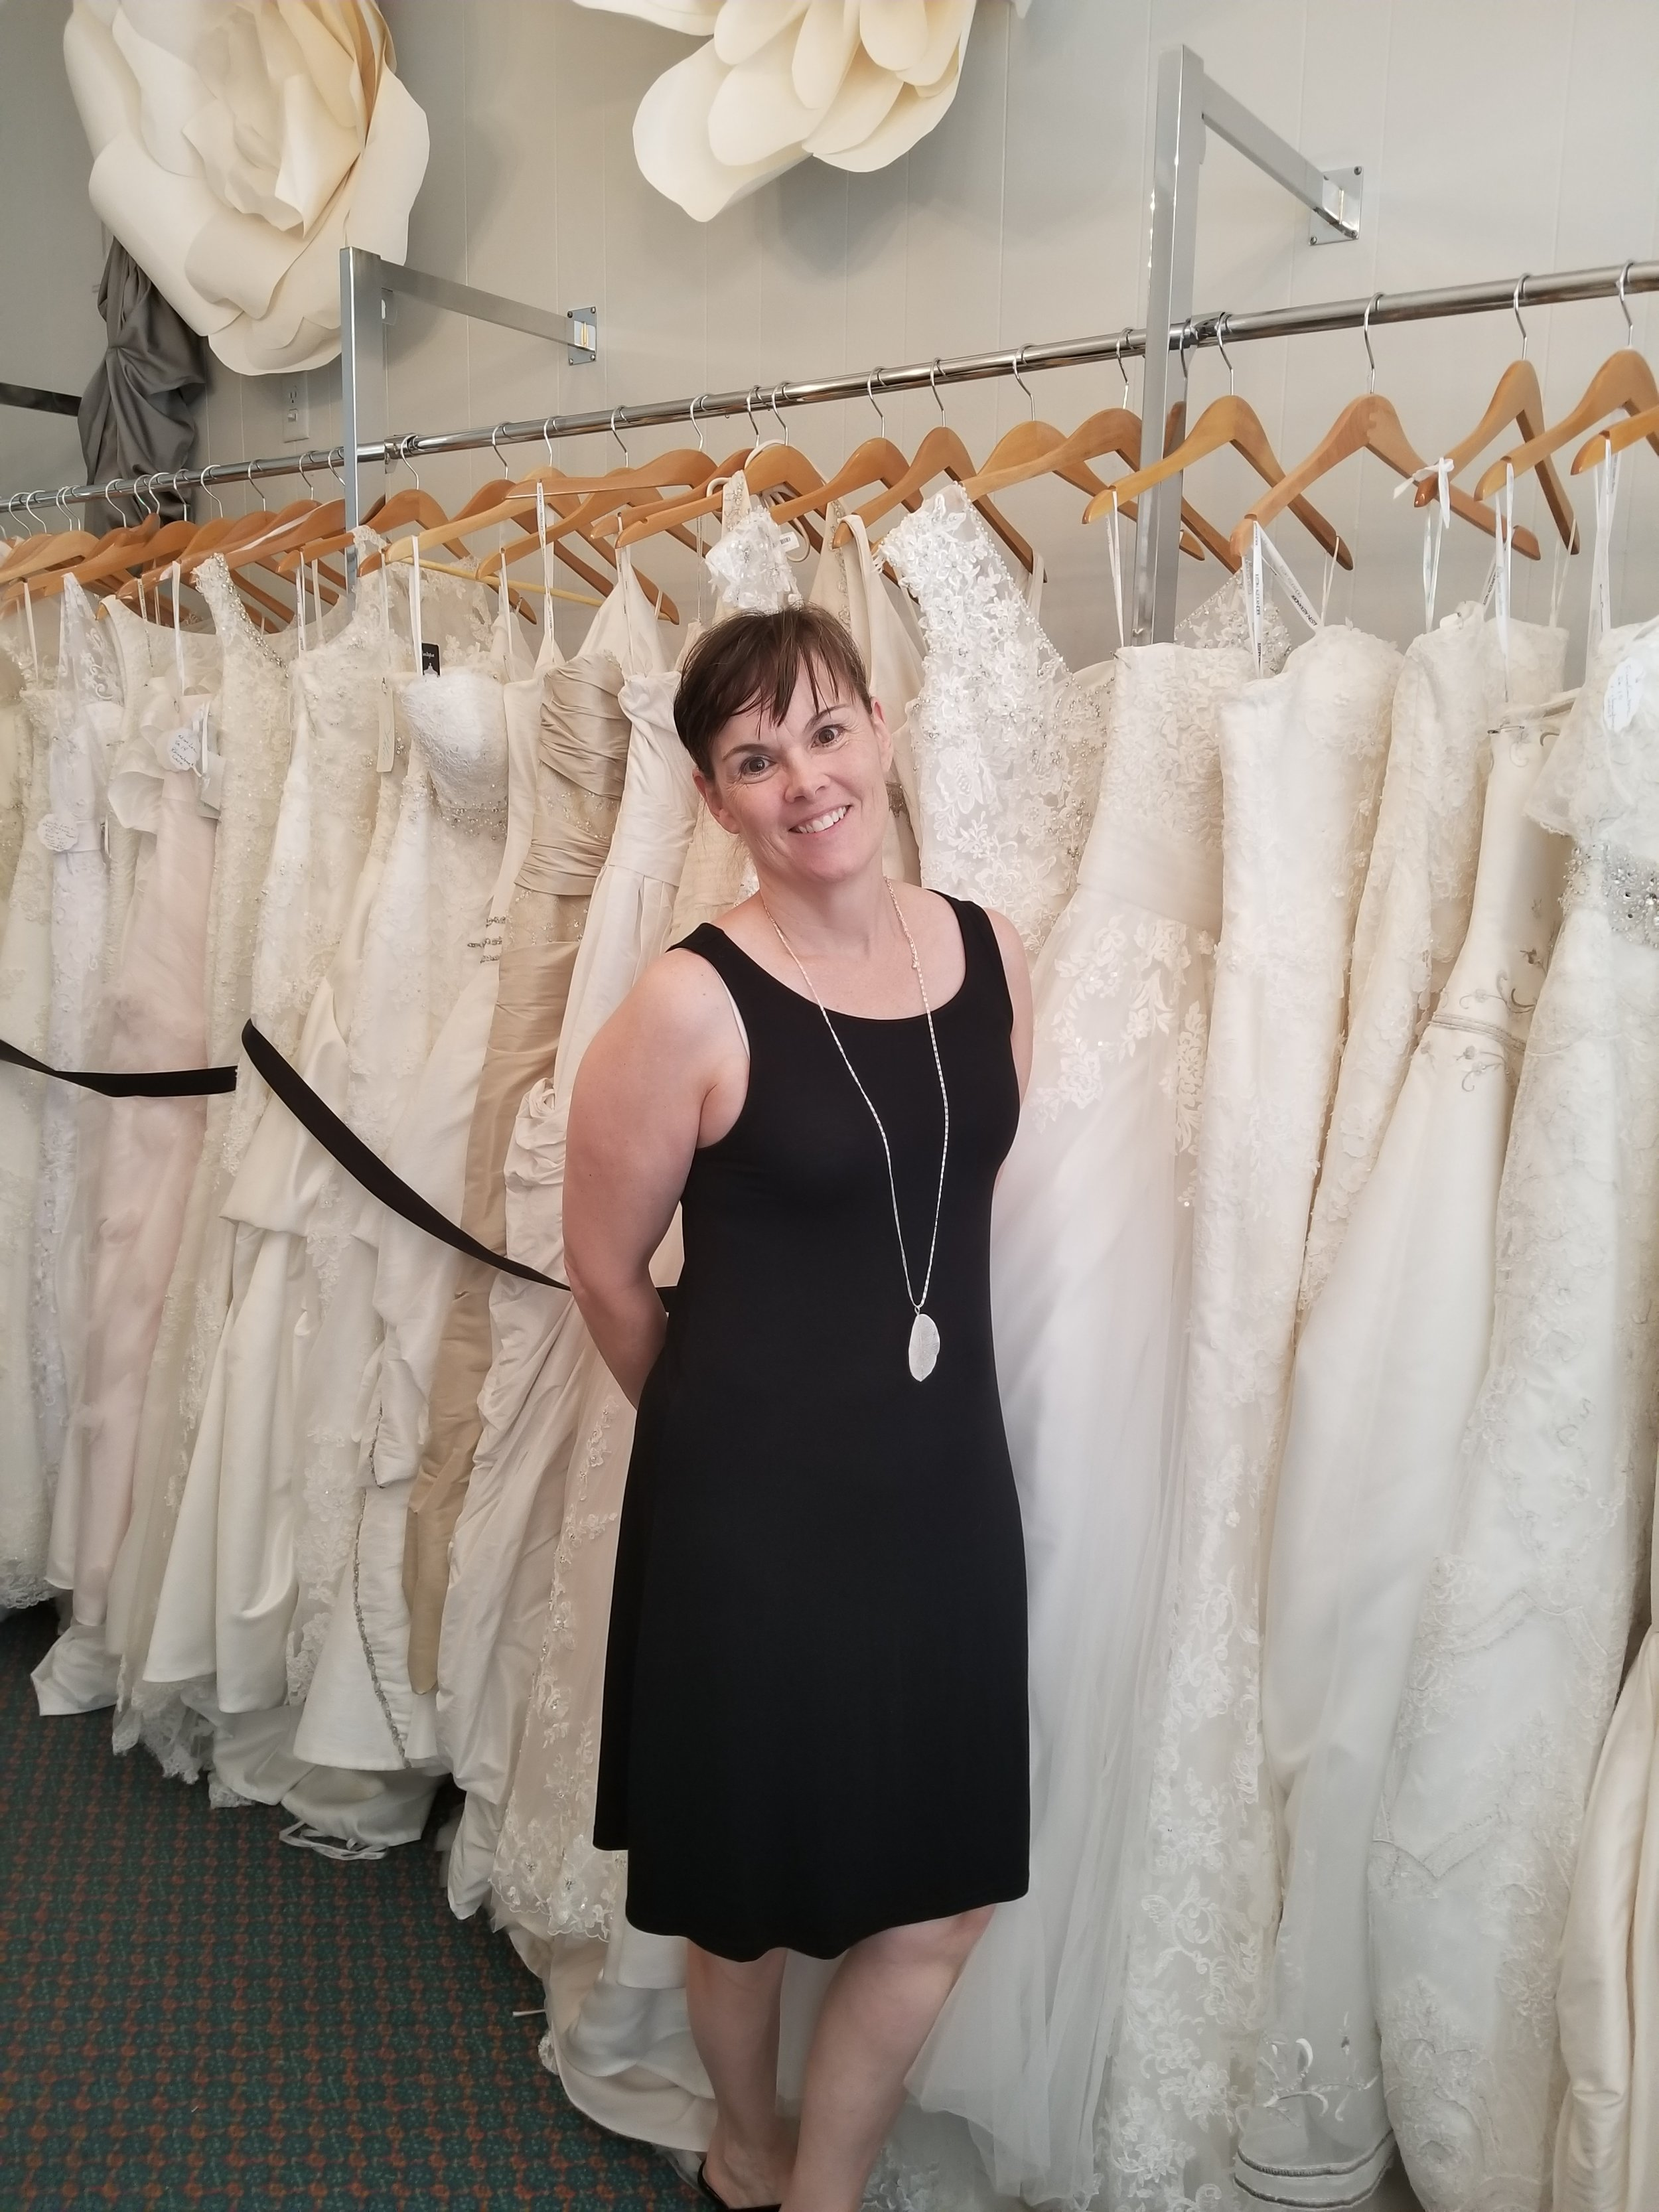 Blush Boutique  - We had the opportunity to visit one of the newest bridal shop in New Bern, NC. Blush Boutique, located on 222 Craven Street in New Bern, NC. As you enter the boutique you are welcomed with beautiful gowns, sparkling veils, and accessories. The shop offers a wide range selection of wedding gowns from high end designers (such as Enzoani, Vera Wang, Kitty Chen, Henri Roth, Pronovias, and more). in a range of styles. The owner, Jean Lloyd, recently opened the shop to provide a boutique experience with designer gowns and accessories to meet the needs of brides in New Bern and surrounding areas.  The shop also offers designer formal shoes, sashes, and jewelry as well.  At Blush, wedding gowns are purchased off the rack and alternations are done offsite at the buyer's discretion. Blush is not a consignment shop and only sells new designer gowns and accessories. The boutique is open daily Tuesday – Saturday for shopping and gown fittings.  Everyone is welcome to come and shop anytime during shop hours. Blush offers brides private appointments for fittings so that they can give every bride the personal boutique experience. Call 252-497-8875 to schedule your private fitting. You can also visit their website to view the dresses at www.etsy.com/shop/blusbboutiqueetsy.